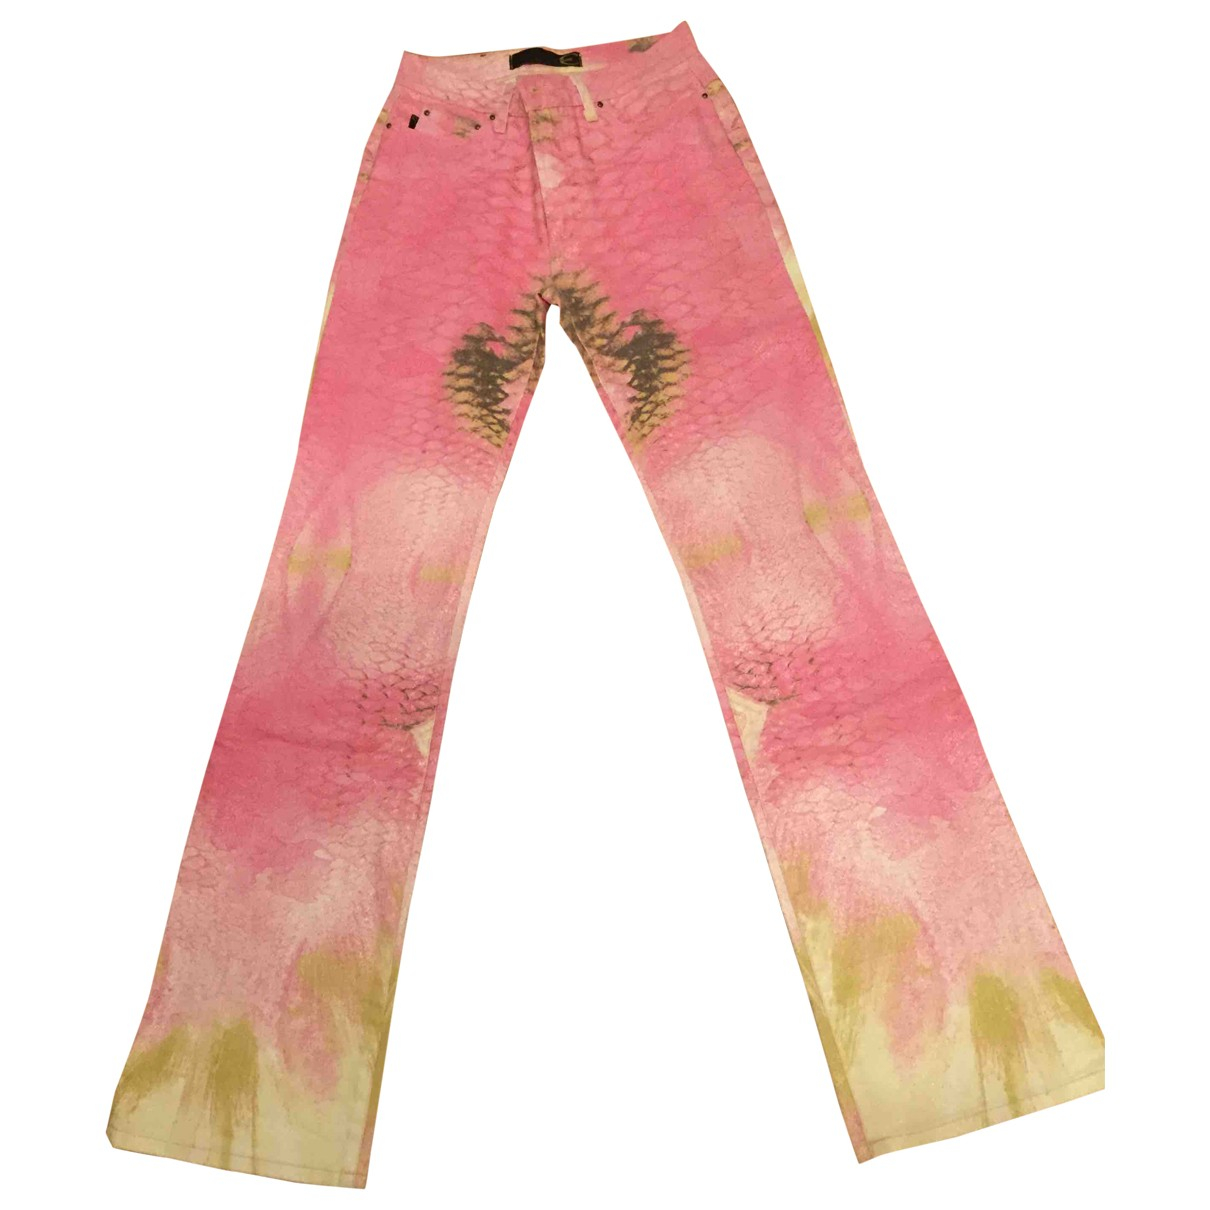 Just Cavalli \N Pink Denim - Jeans Jeans for Women 26 US